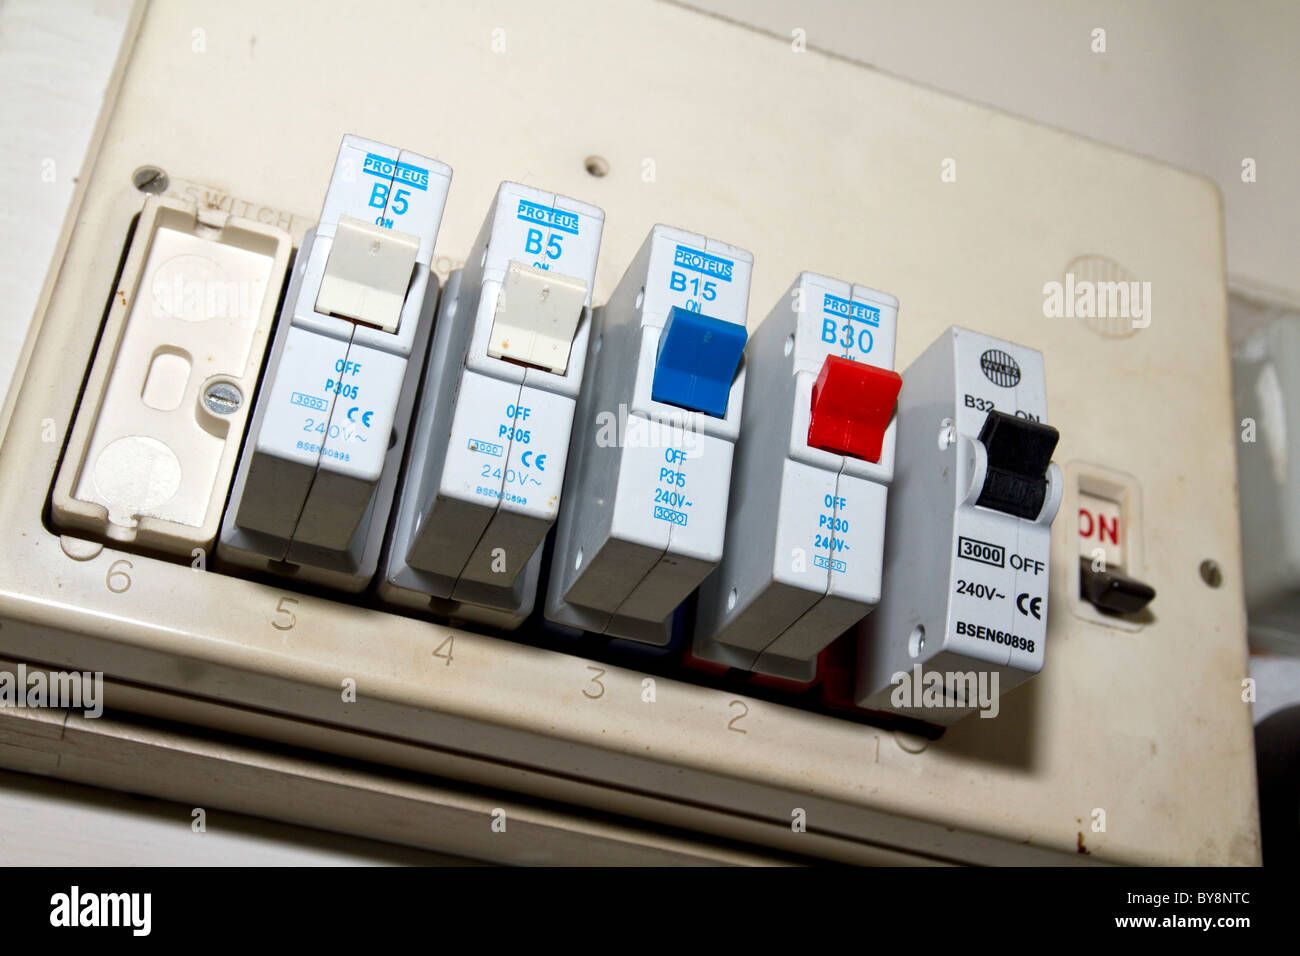 uk old electric fuse box in a london house BY8NTC uk old electric fuse box in a london house stock photo, royalty electric box fuses at eliteediting.co